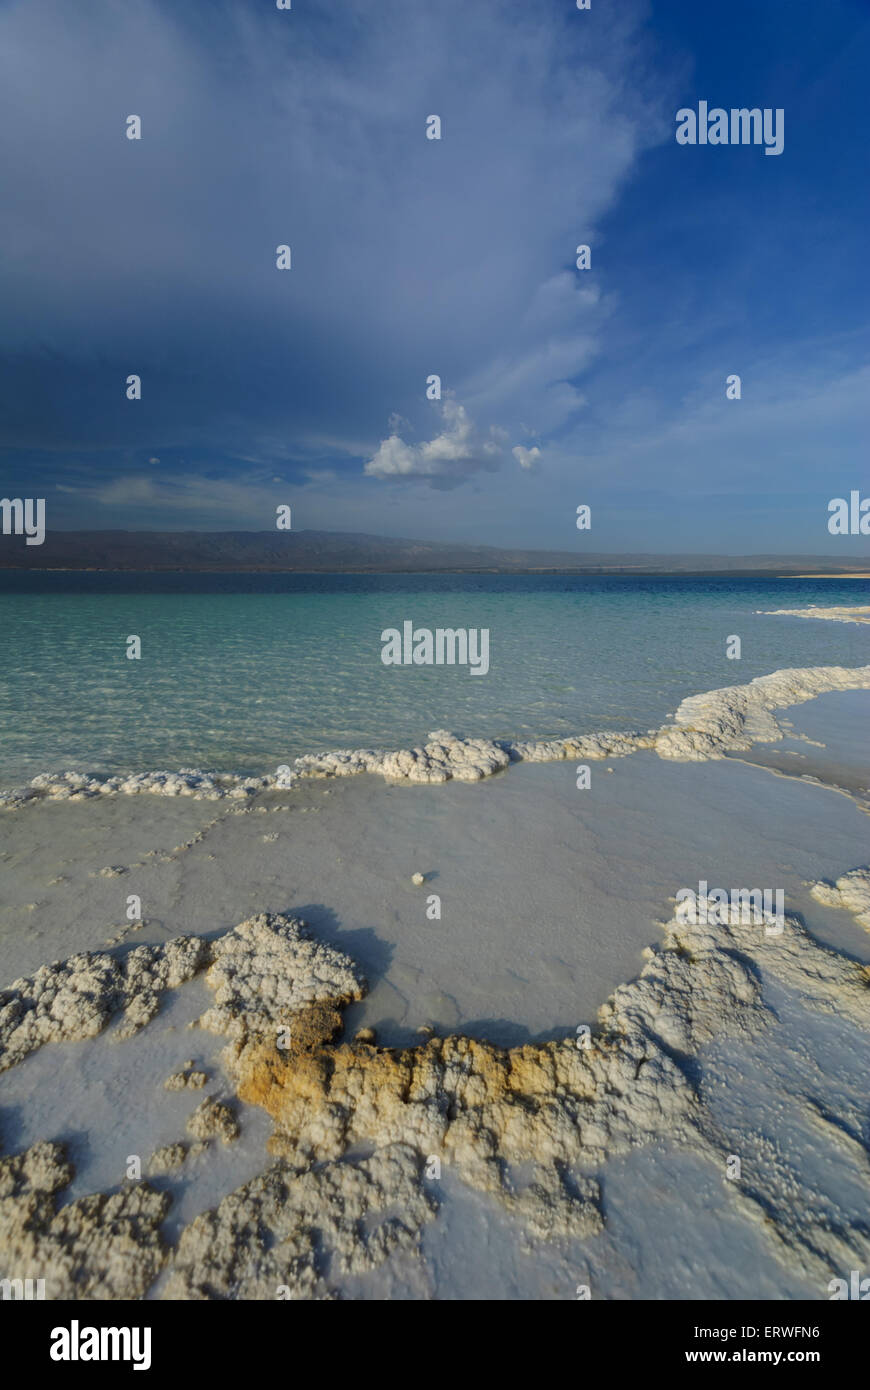 The natural salty rivers of Assal Lake in Djibouti, Africa Stock Photo